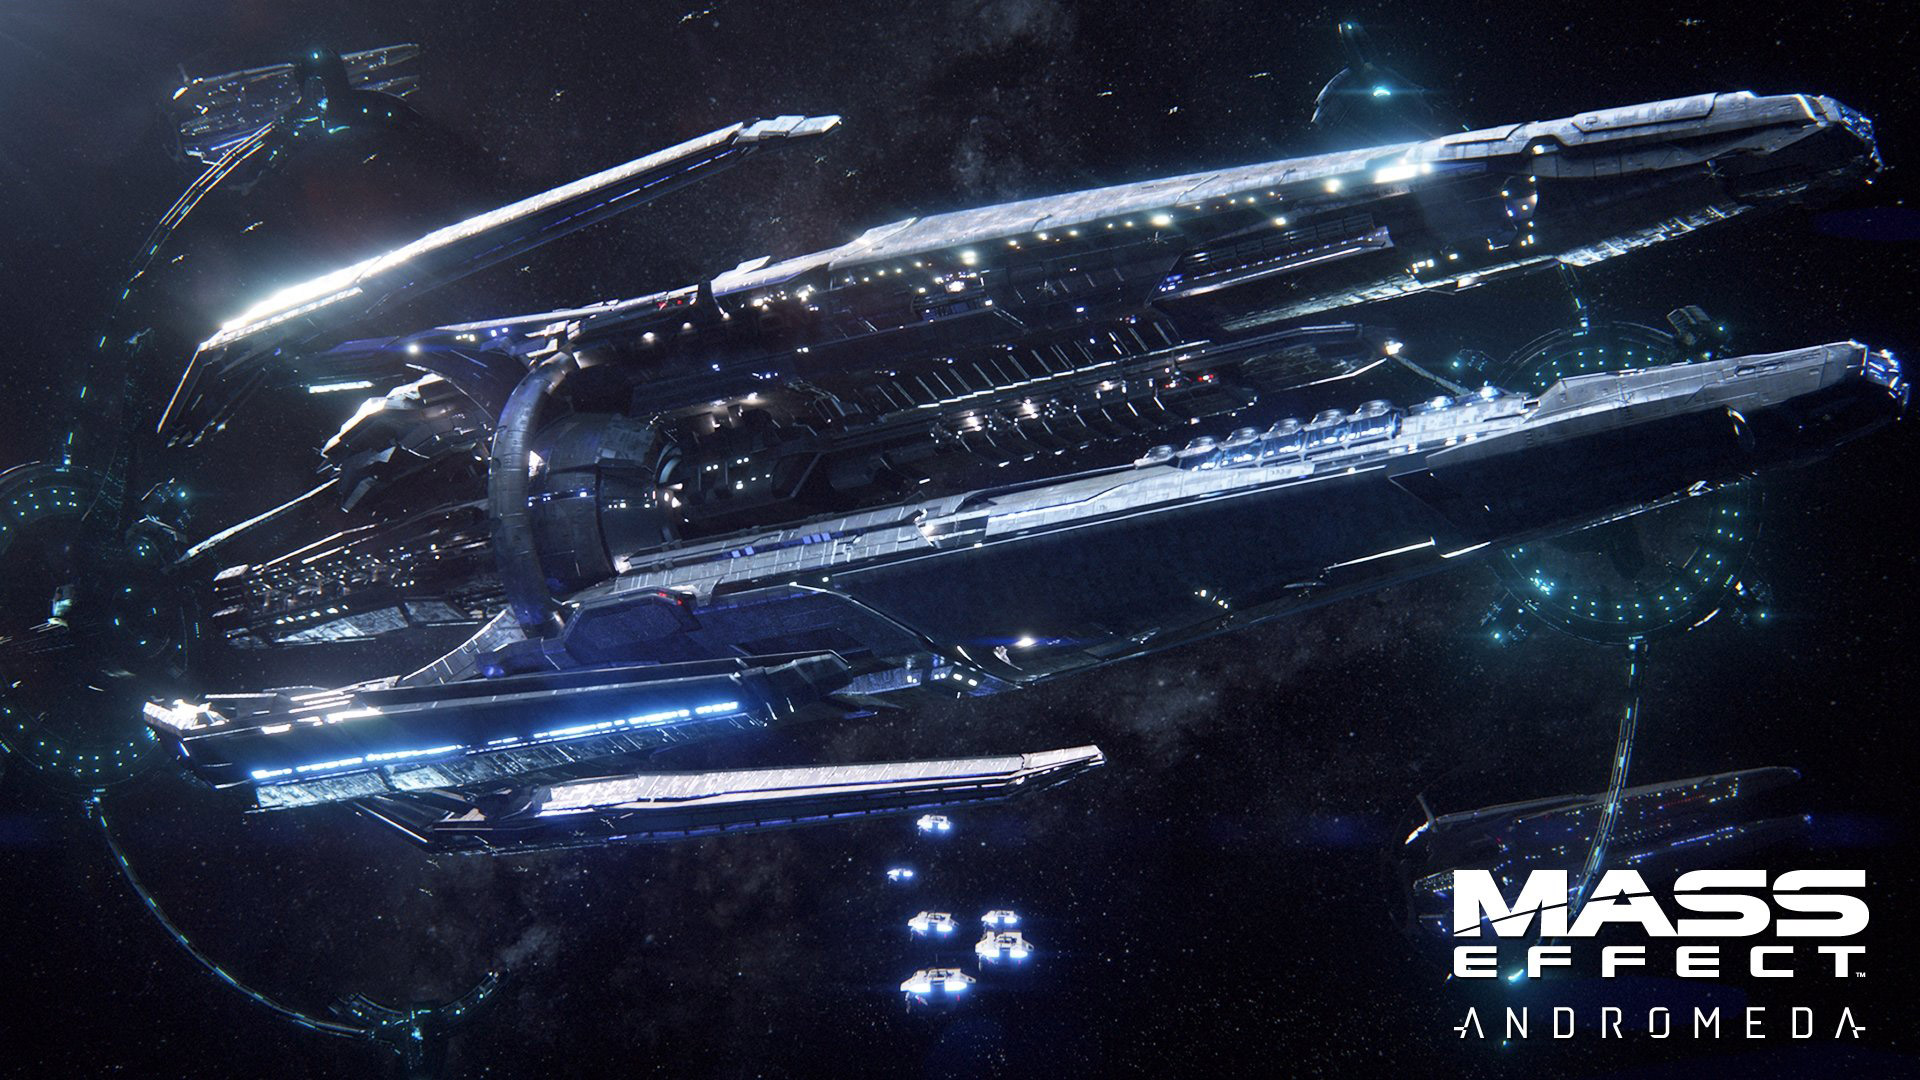 Free Download Mass Effect Andromeda Wallpaper In 1920x1080